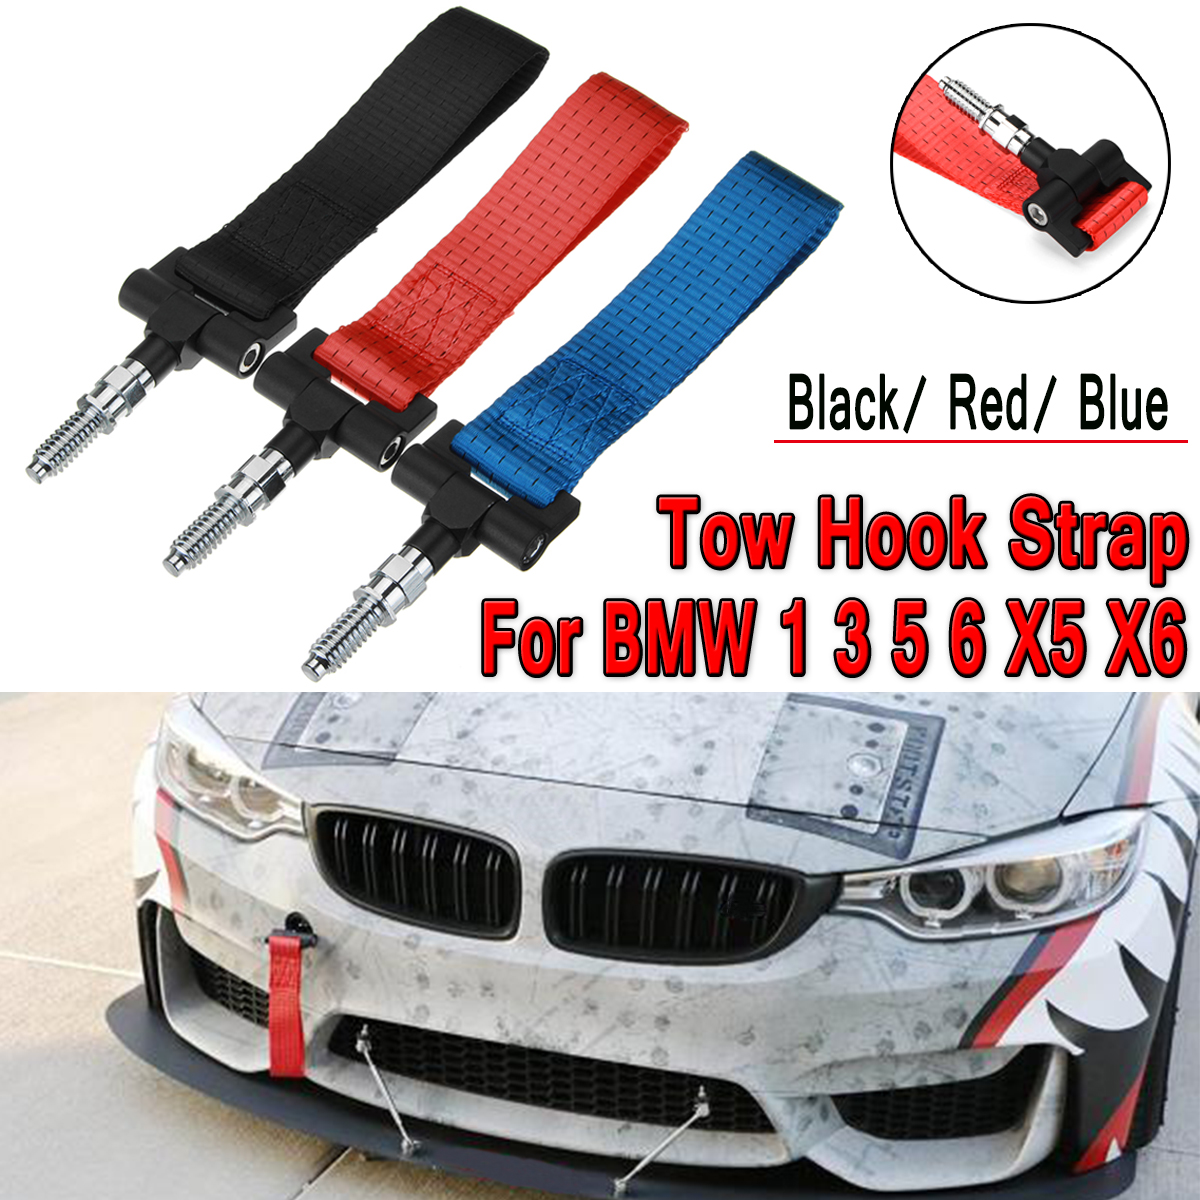 Nylon Track Racing Style Tow Hook Strap Car Hook for BMW 1 3 5 6 X5 X6 Red Blue Black